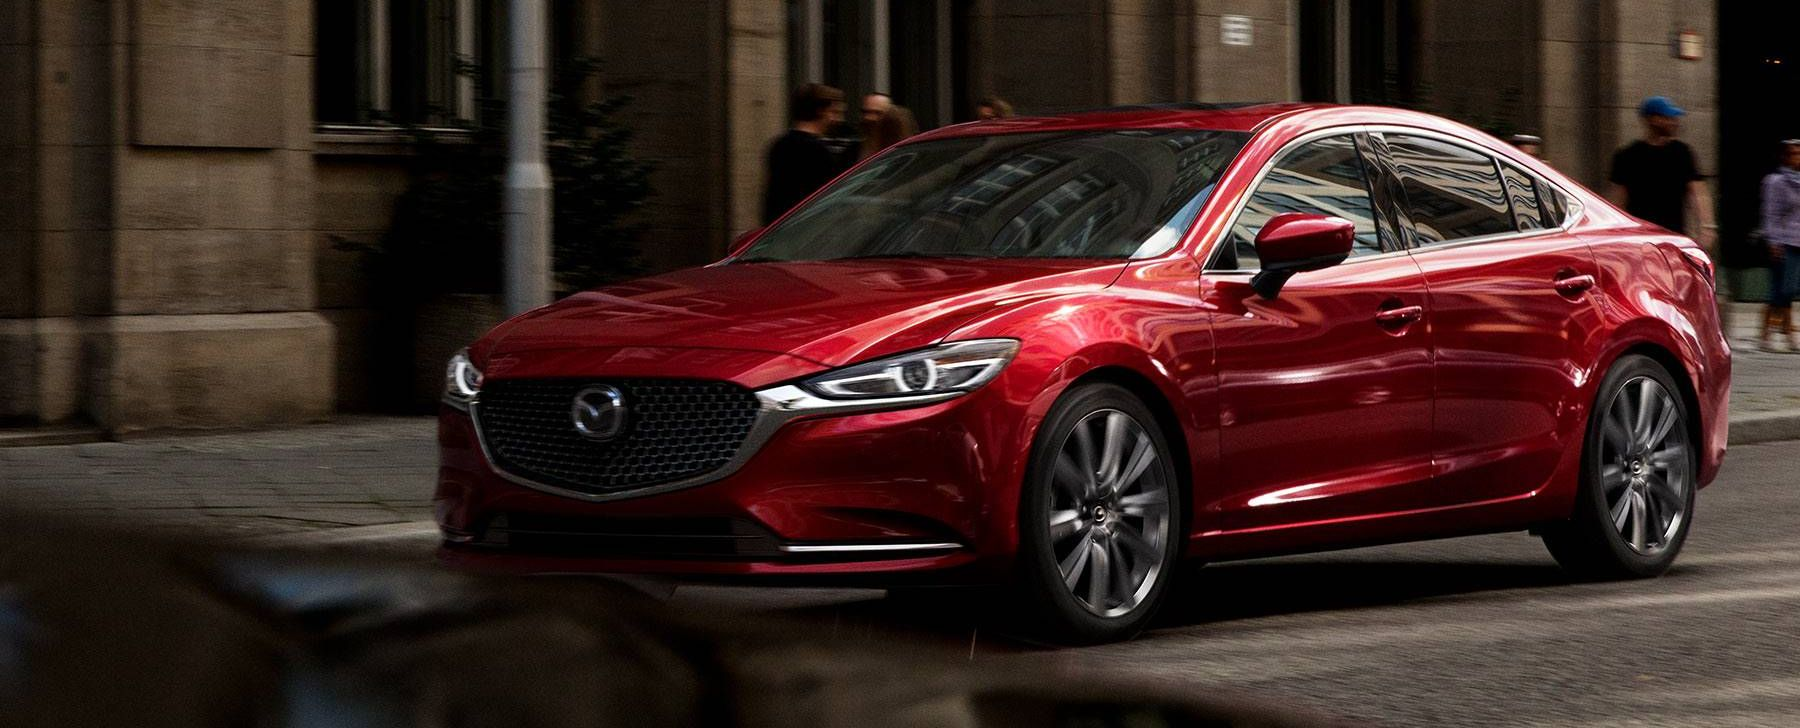 2018 Mazda6 For Sale Near Friendswood, TX